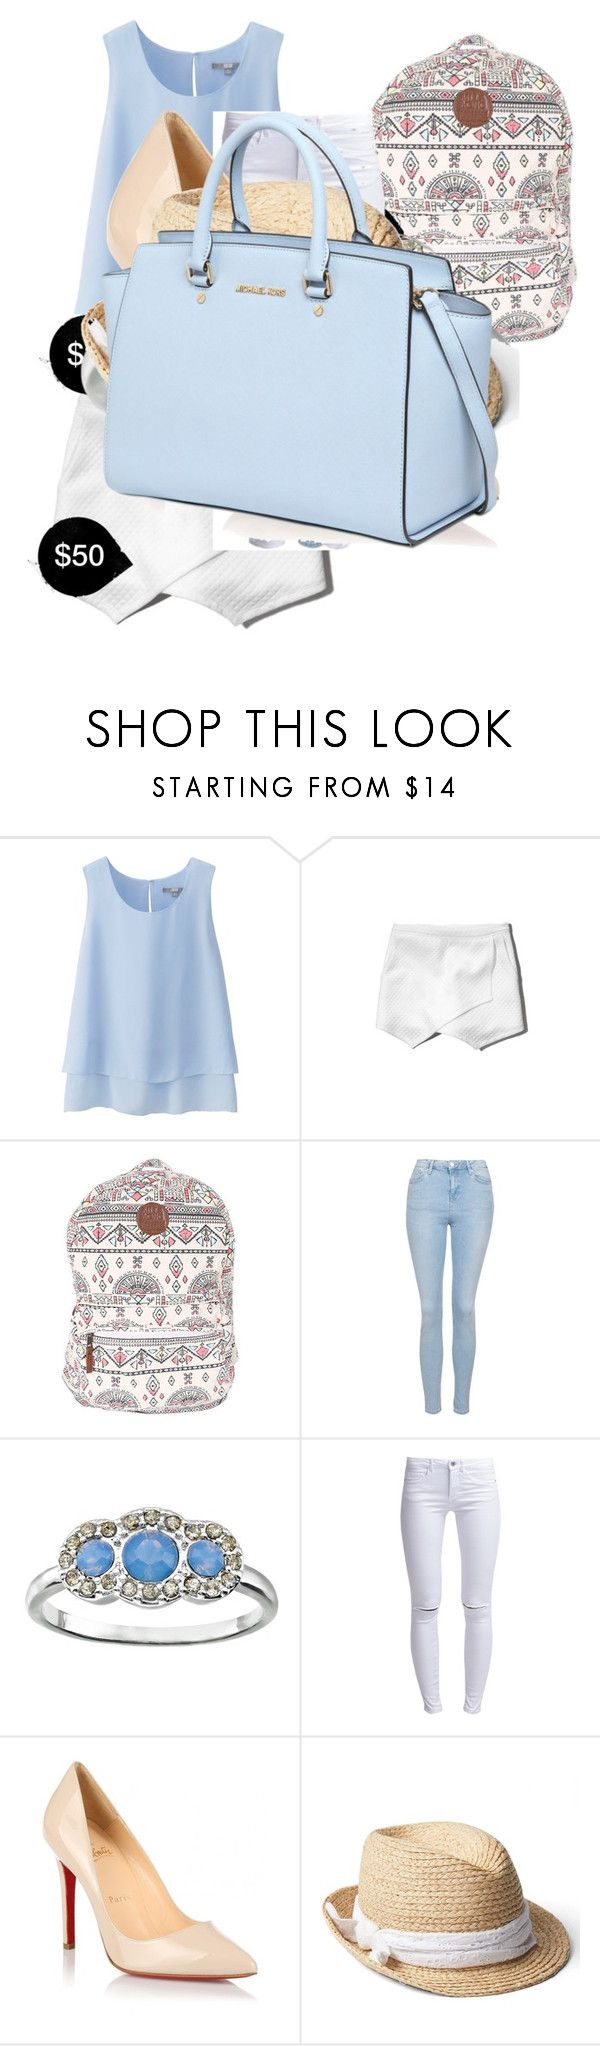 """""""My First Polyvore Outfit"""" by suzanne-hicks ❤ liked on Polyvore featuring Uniqlo, Abercrombie & Fitch, Billabong, Topshop, LC Lauren Conrad, ONLY, Christian Louboutin, Gap and MICHAEL Michael Kors"""